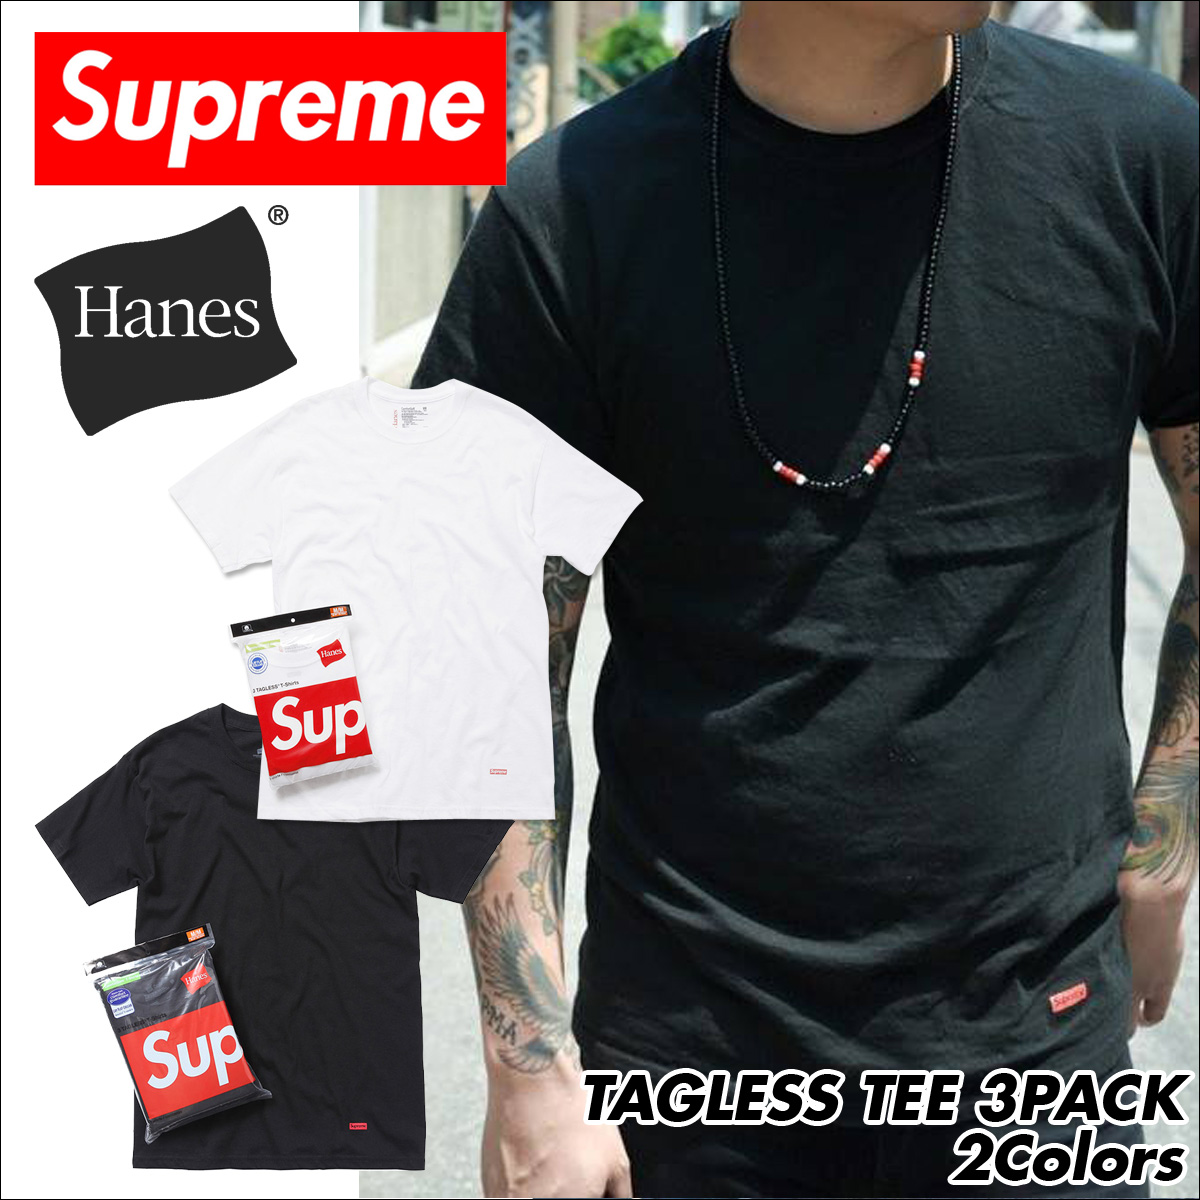 ff66c214b469 Buy supreme hanes tee 3 pack - 50% OFF! Share discount